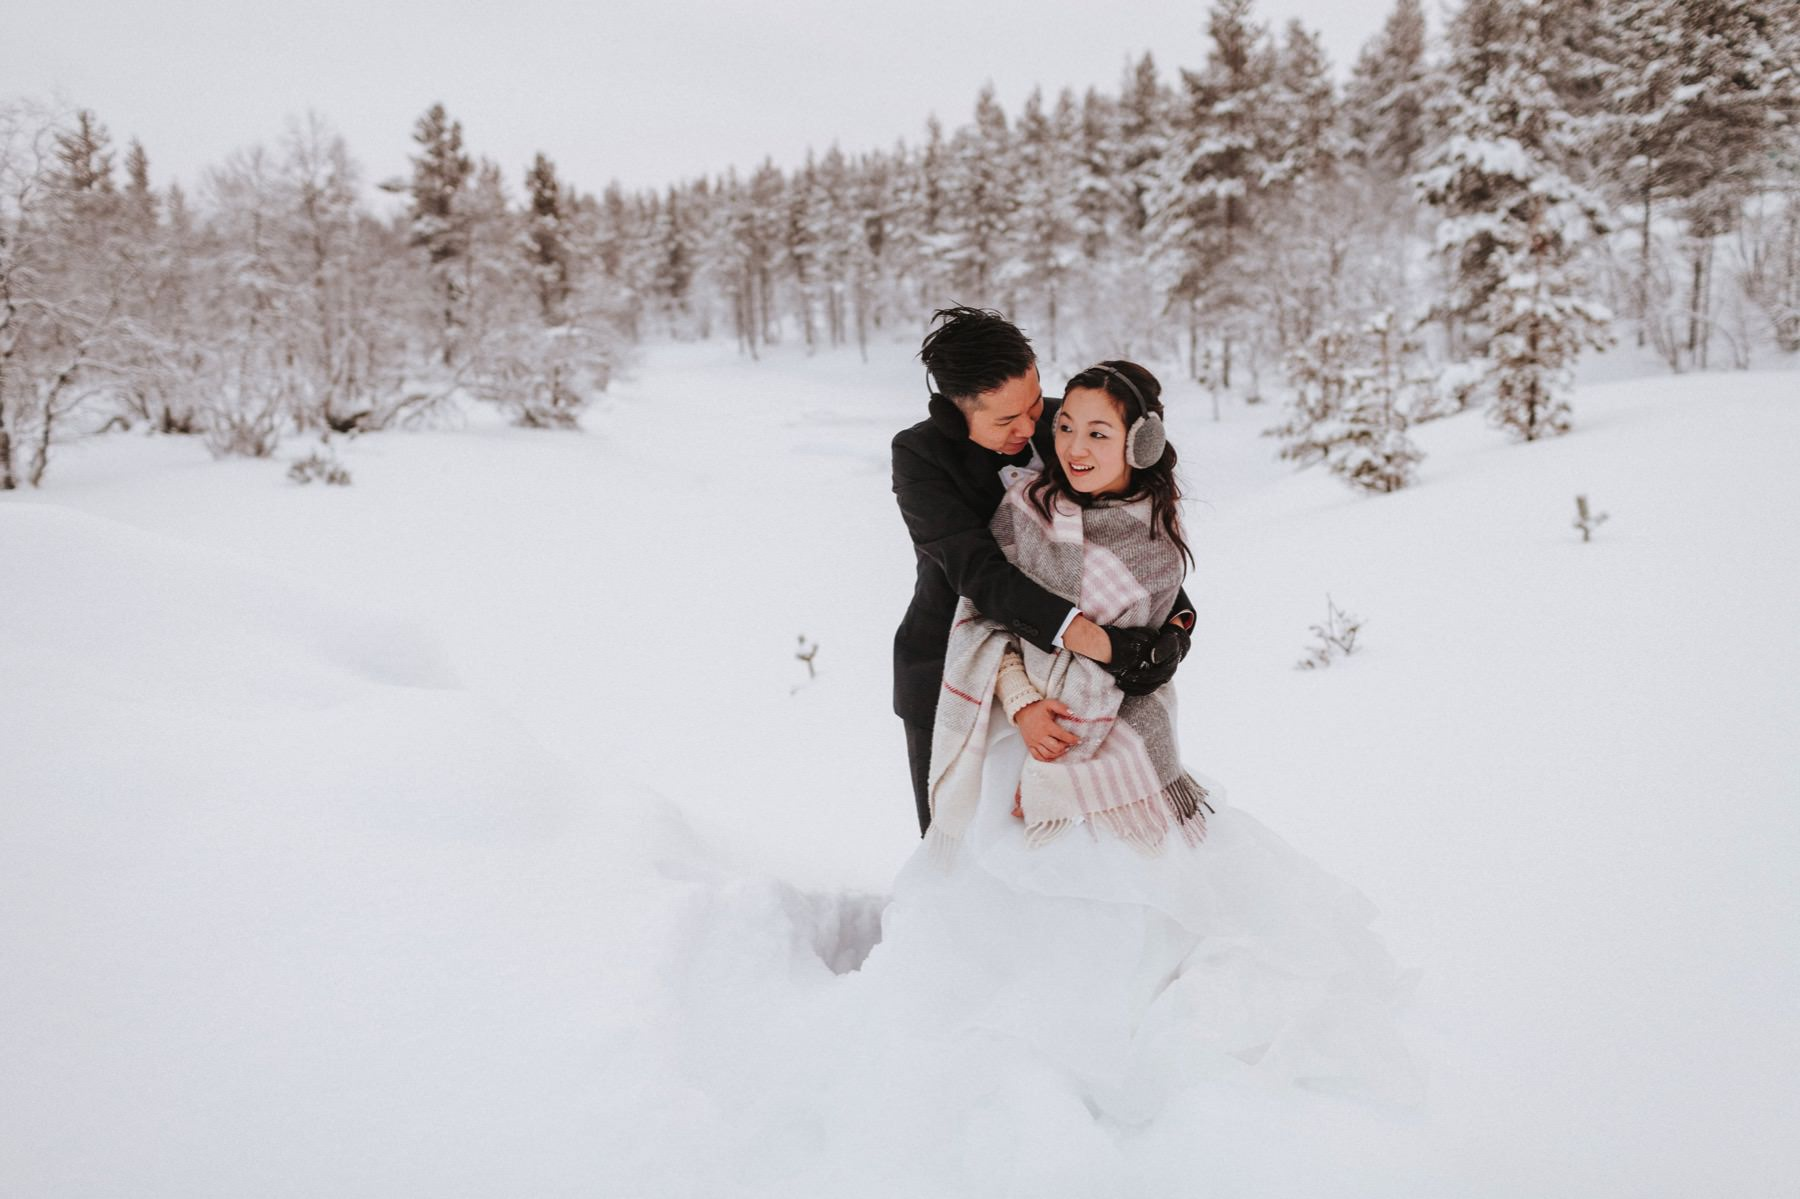 Honeymoon in Lapland